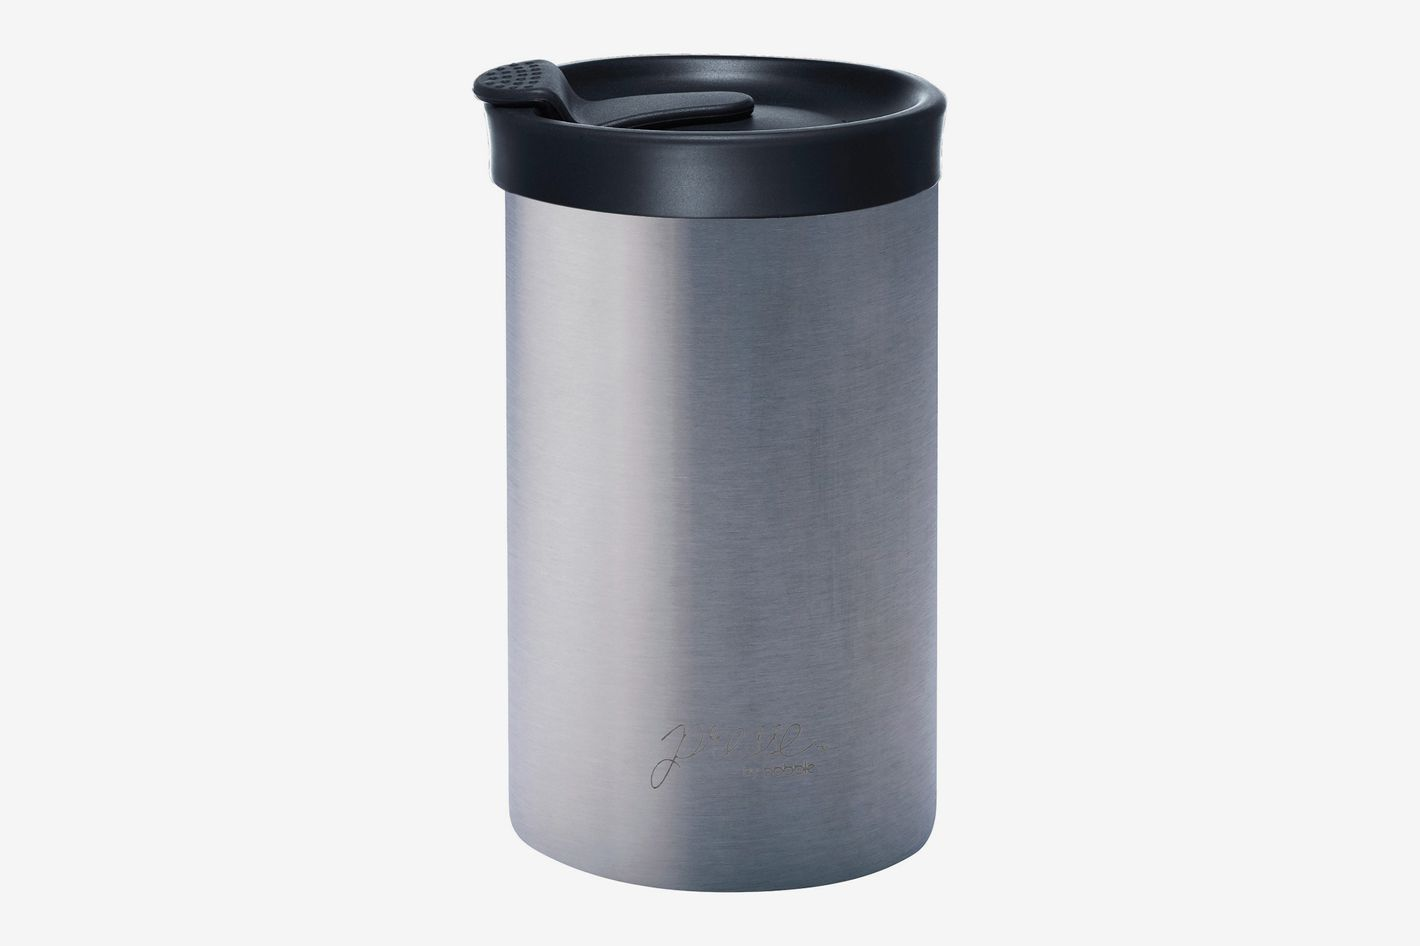 Bobble Presse Stainless Steel Travel Mug